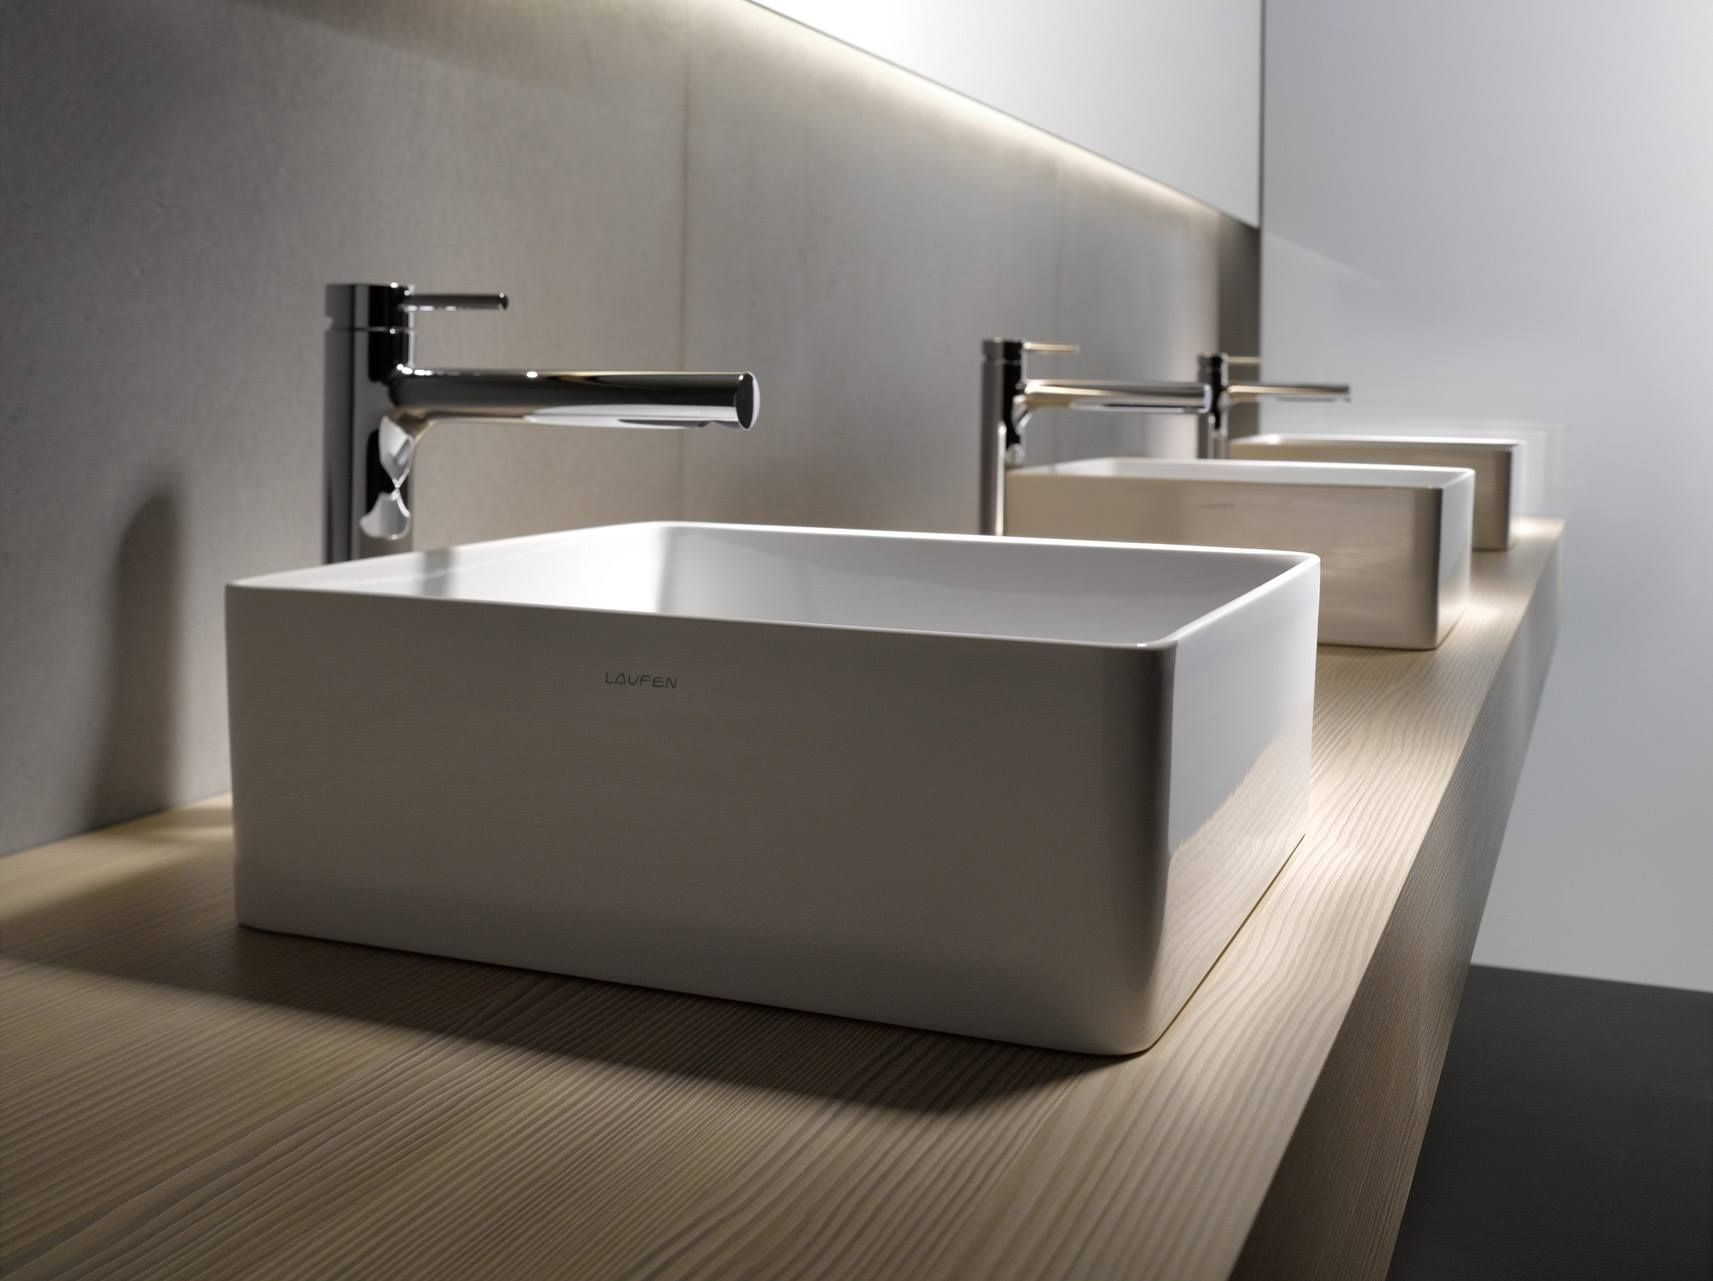 Bathroom sink designs pictures - Fascinating Modern Bathroom Sink Idea Featuring Wall Mounted Wooden Brown Modern Bathroom Vanity Triple White Vessel Sinks And Freestanding L Shape